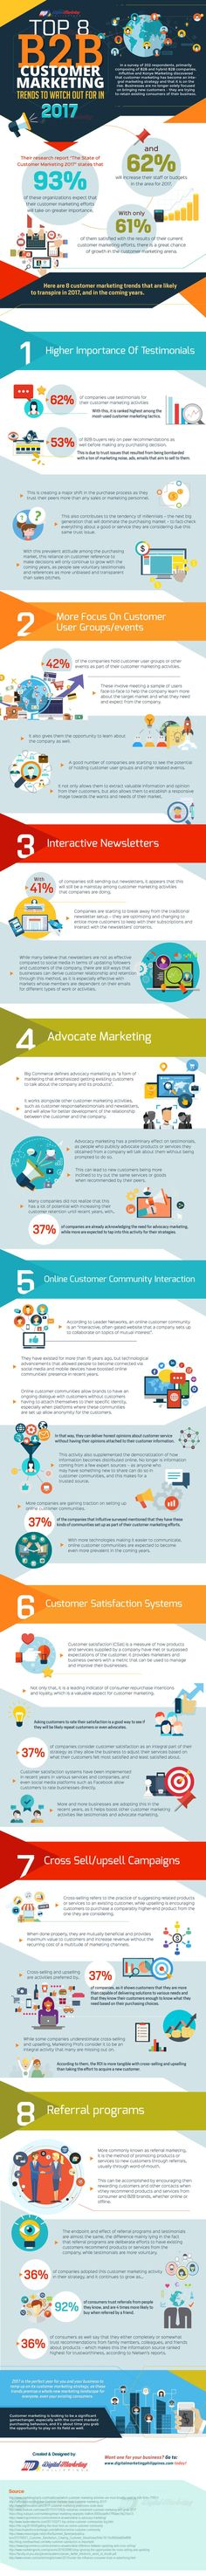 Customer #Marketing 8 Ways to Grow Your Business Using Existing Customers #Infographic #SocialMedia